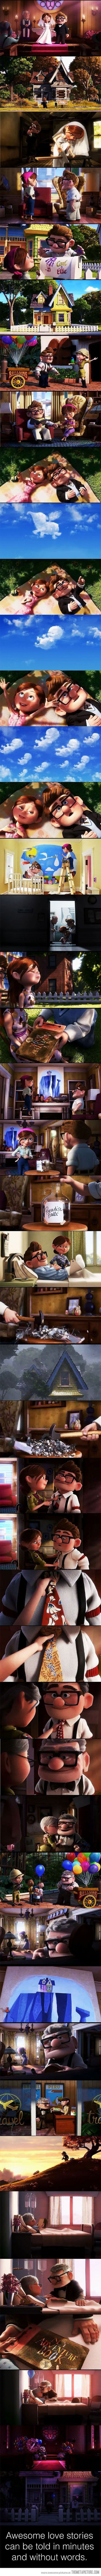 And cue the tears. The best love story told without words. Gets me every time!